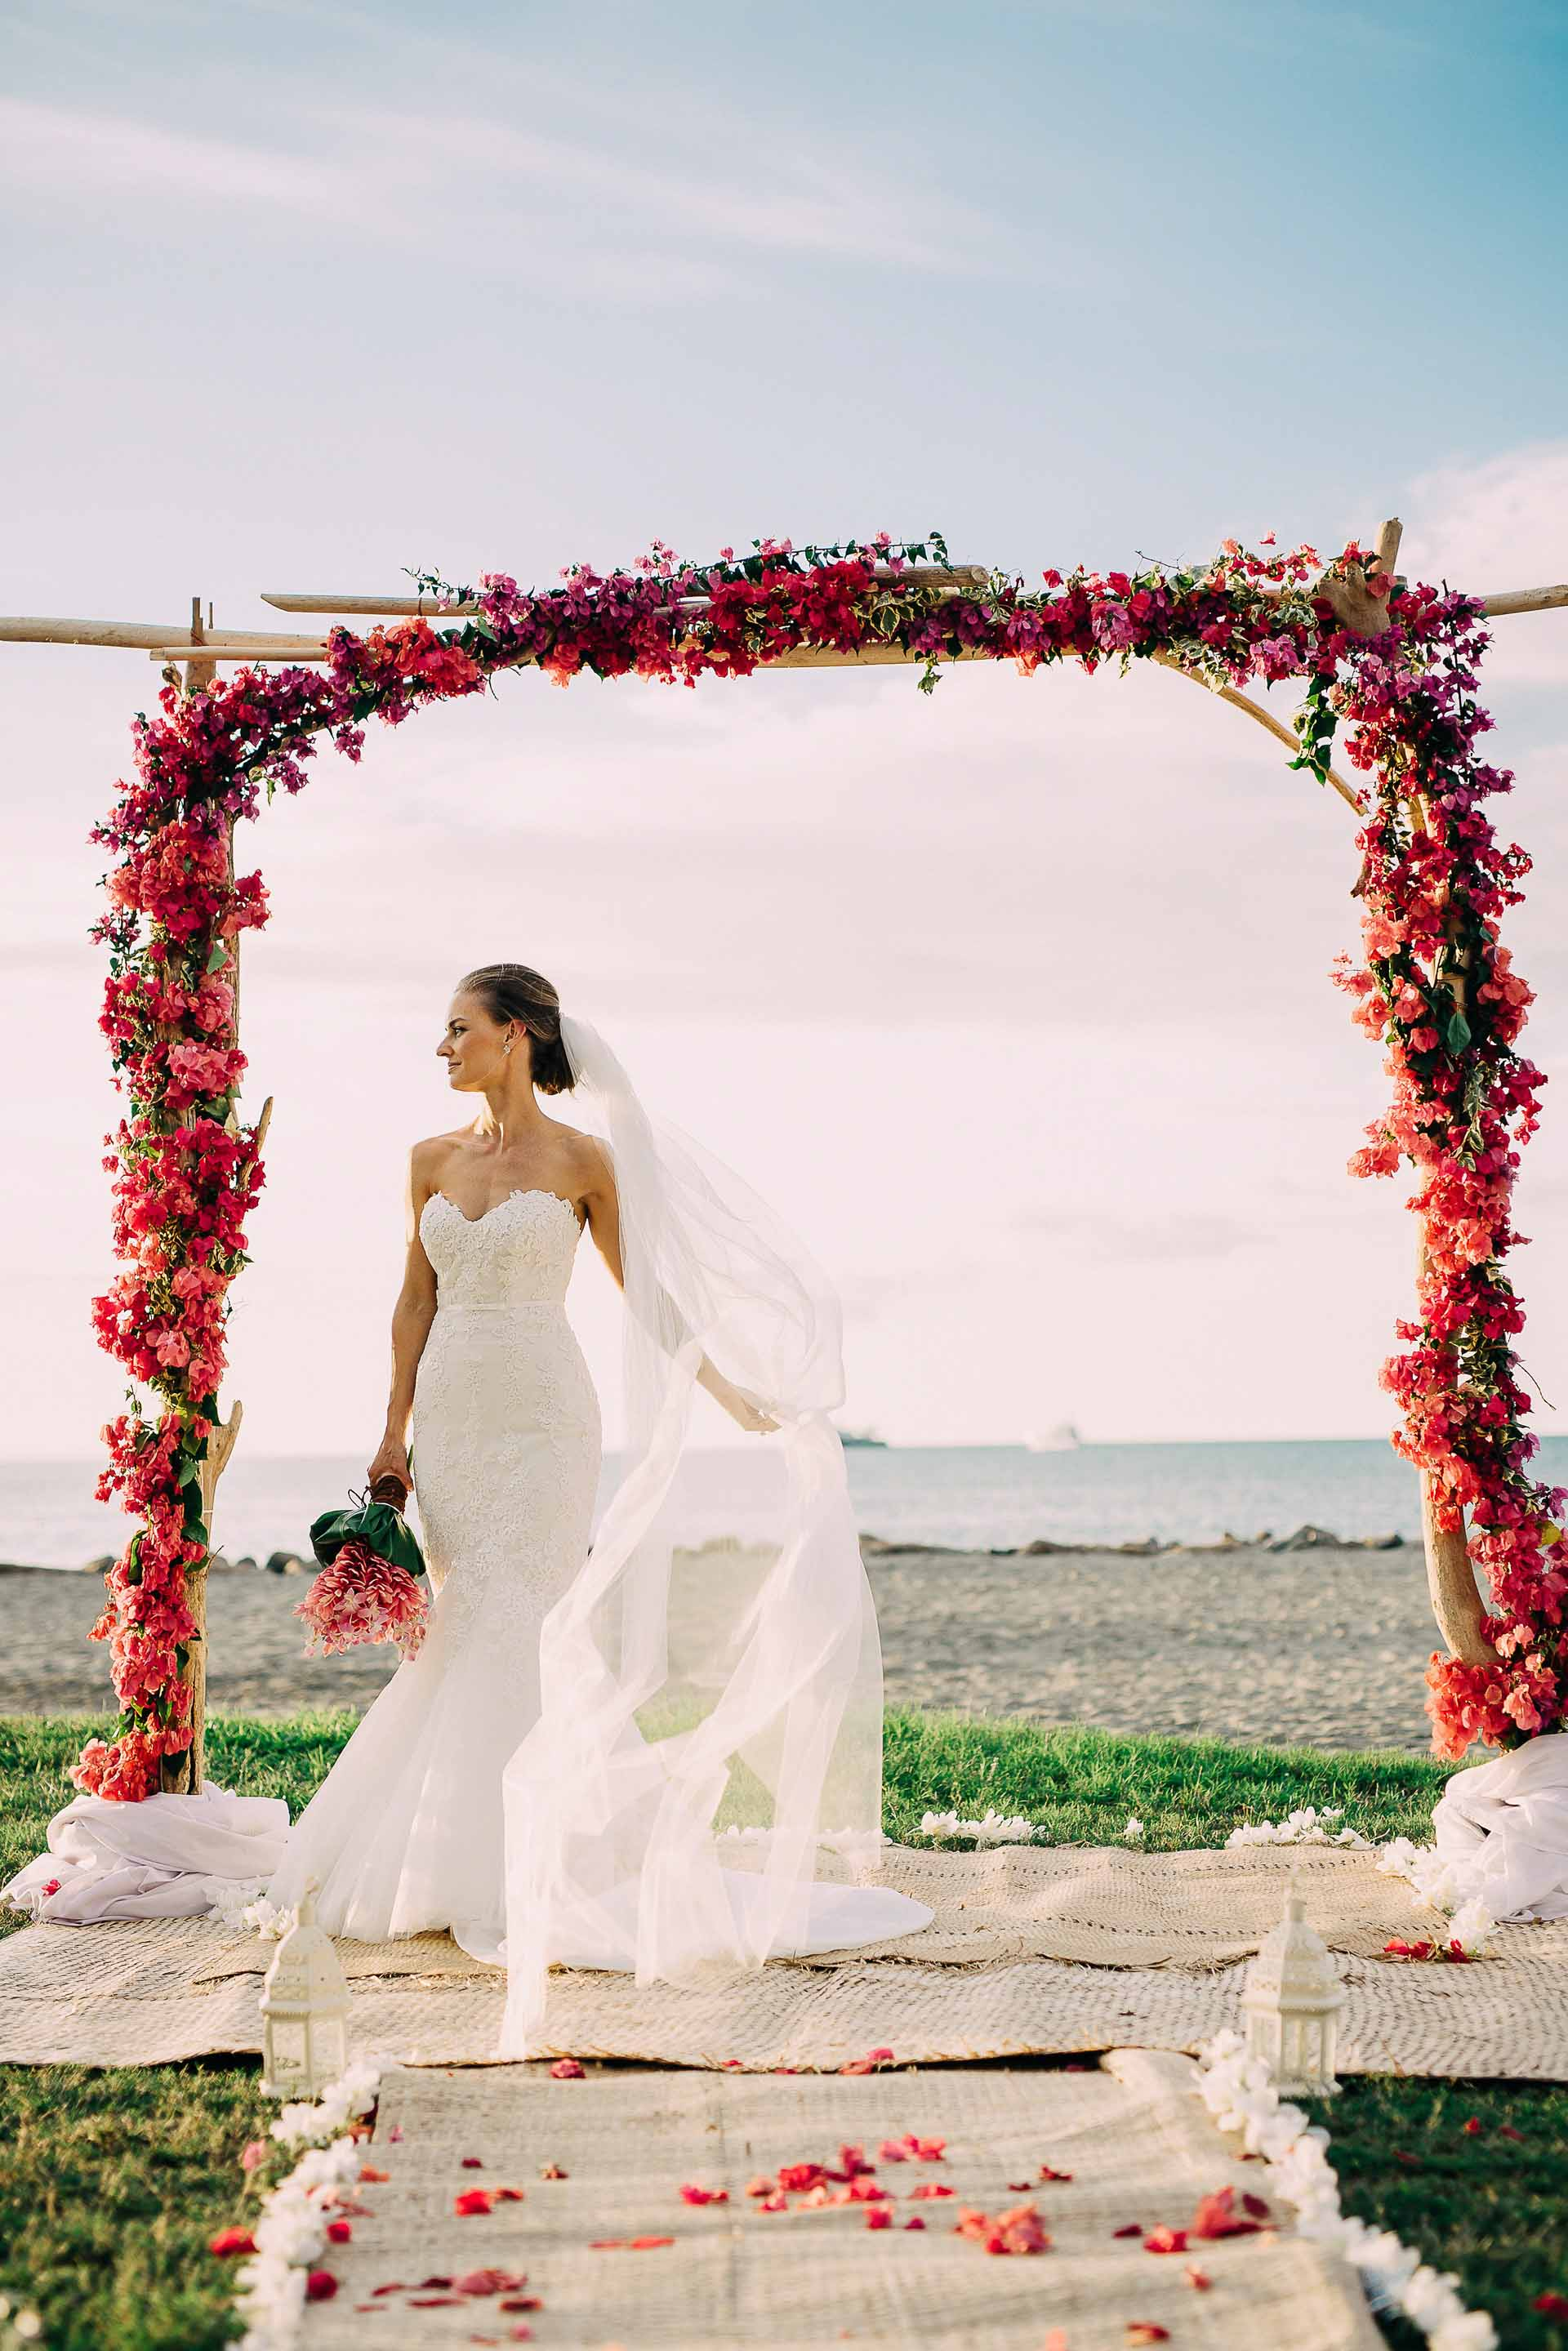 Fiji Bride under her beautiful red bougainvillea and drift wood arch after her tropical beach wedding.